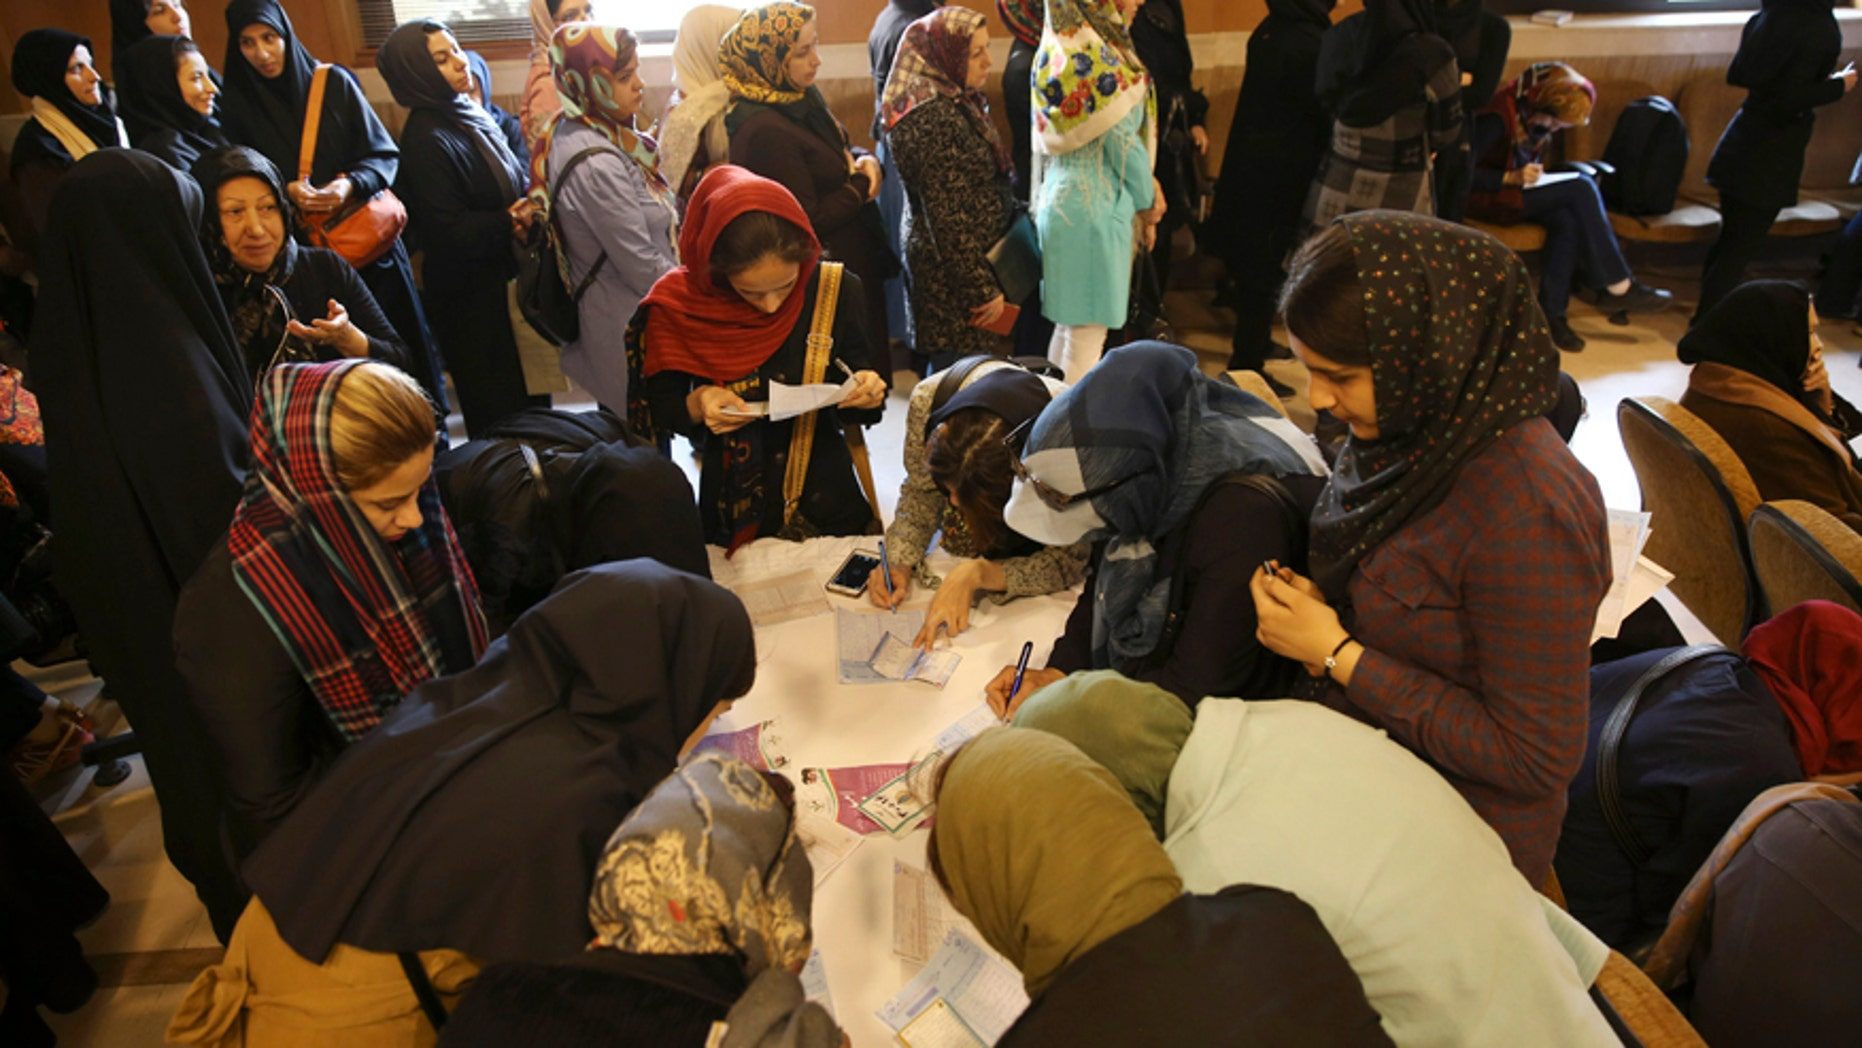 Feb. 26, 2016: A group of Iranian voters fill out their ballots as the others queue for getting ballot papers during the parliamentary and Experts Assembly elections in a polling station in central Tehran, Iran.